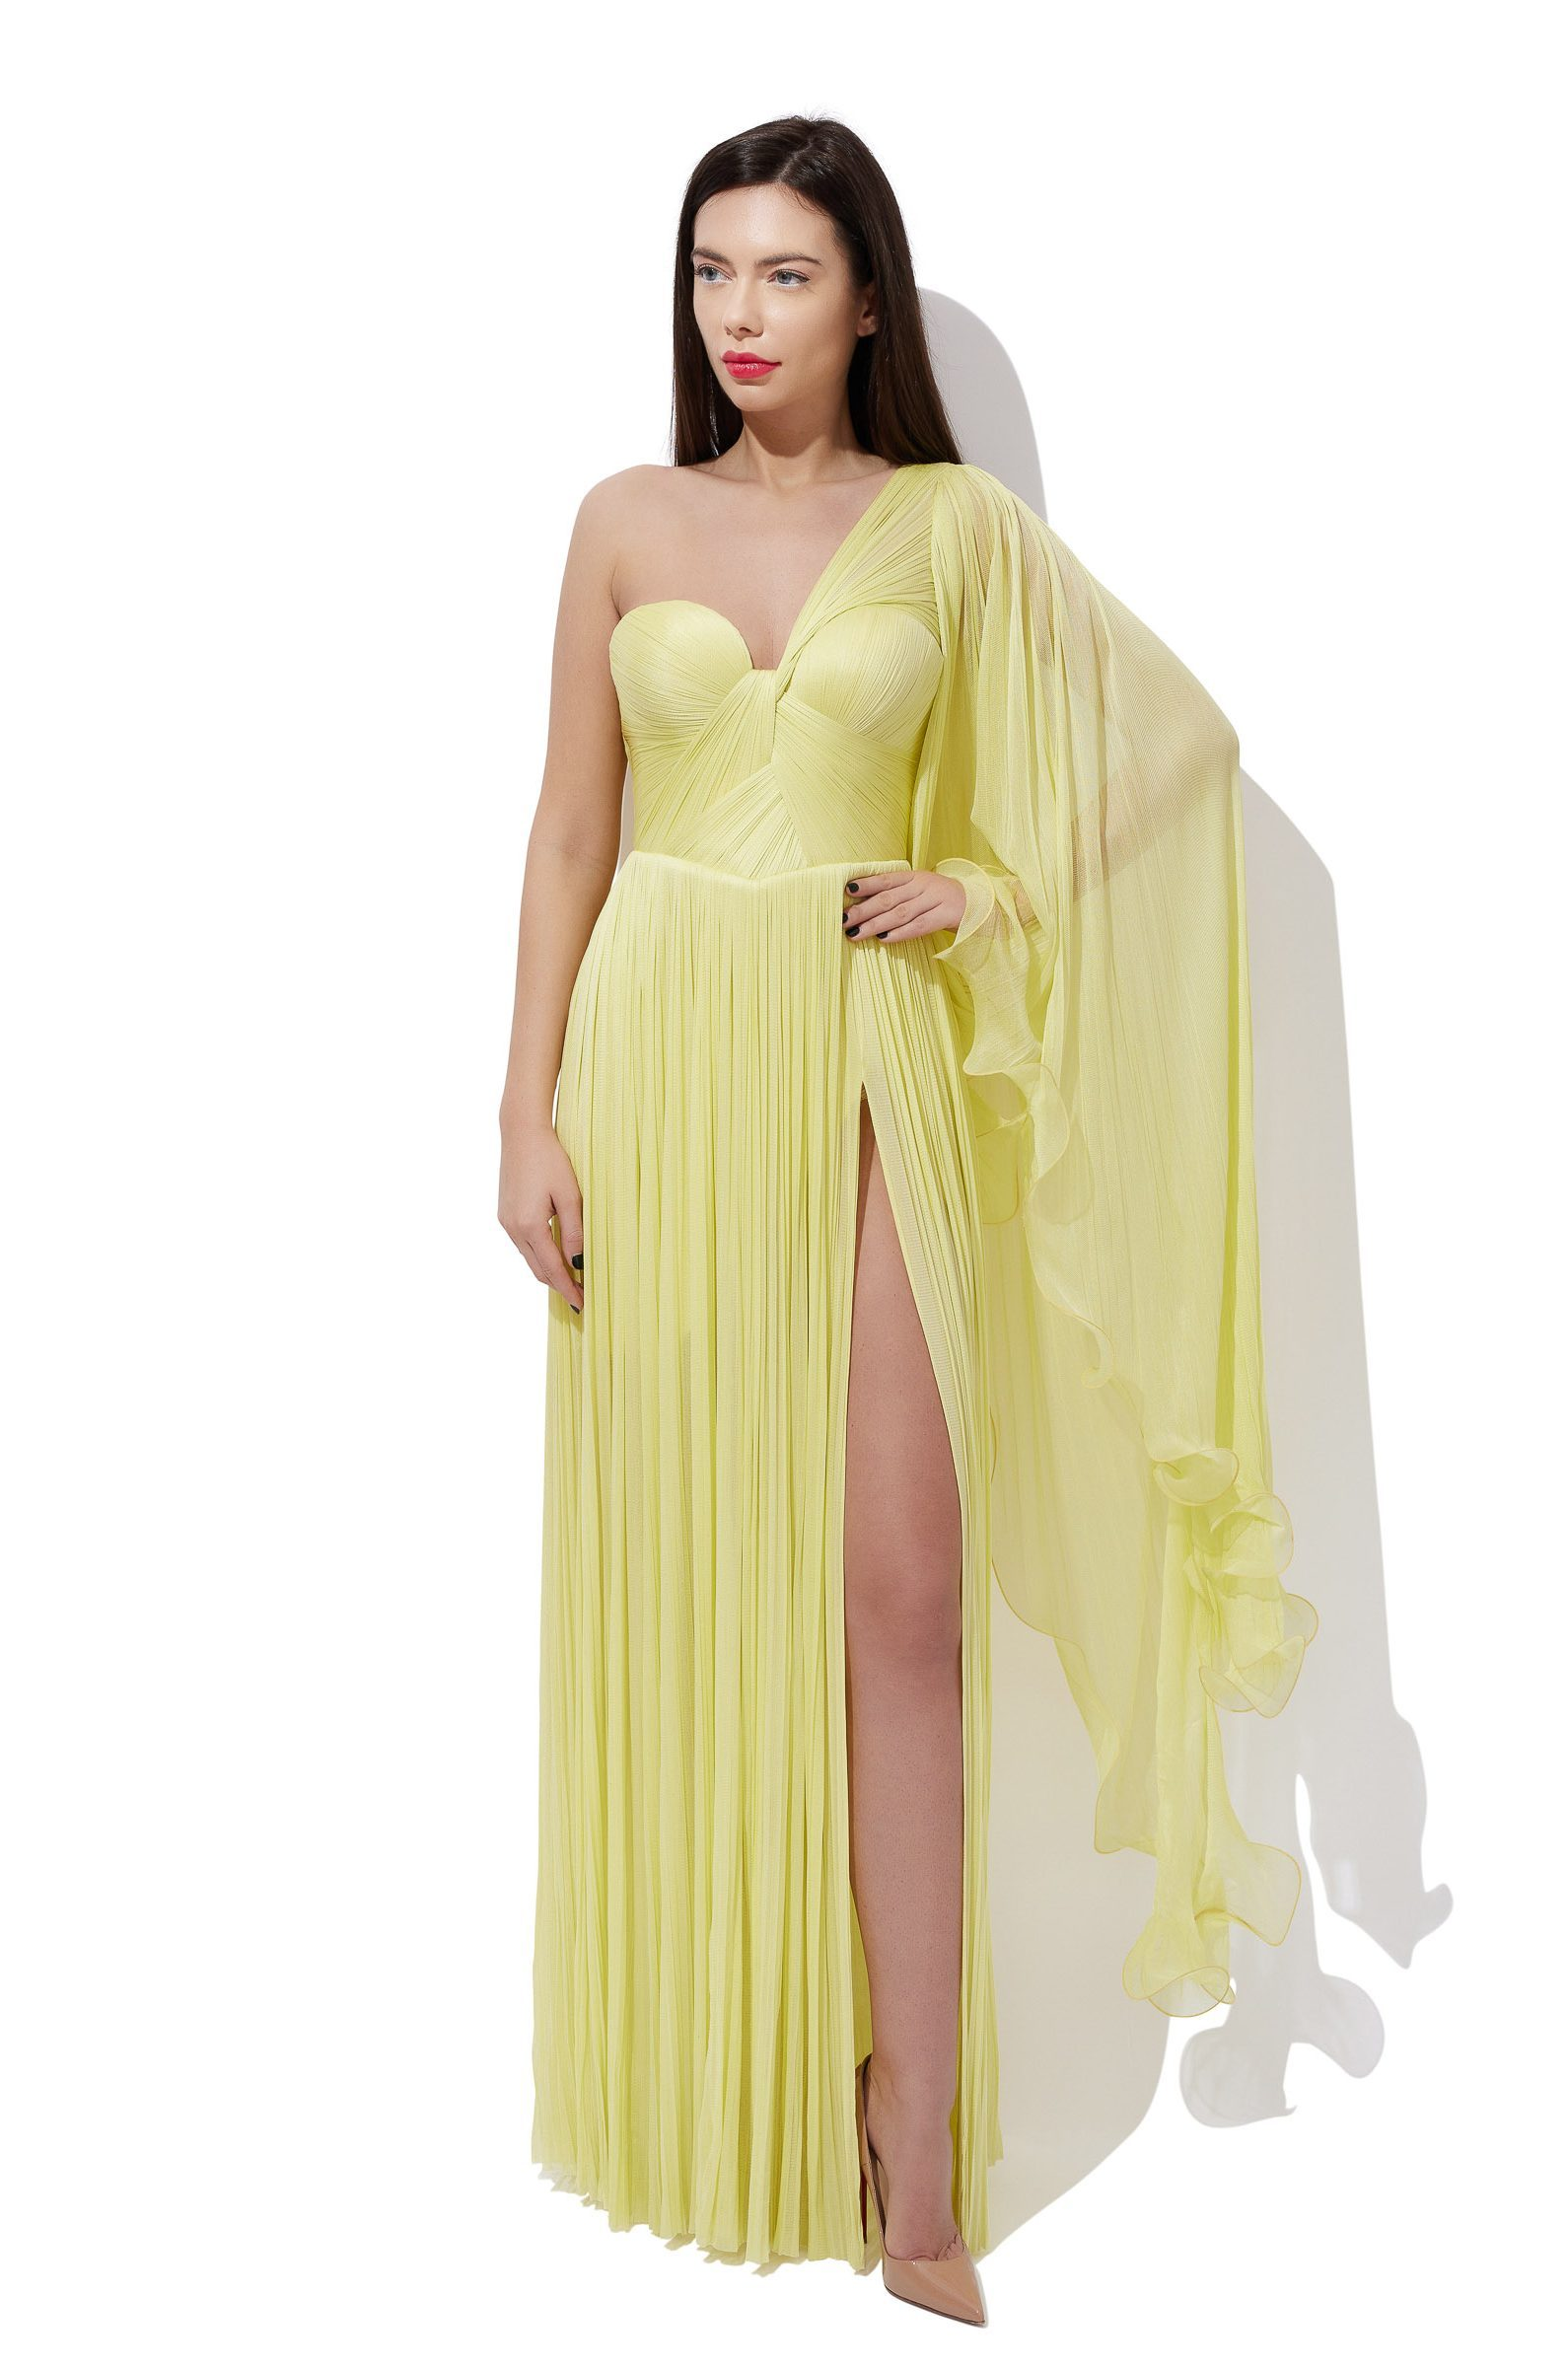 Asymmetrical sleeve corset gown